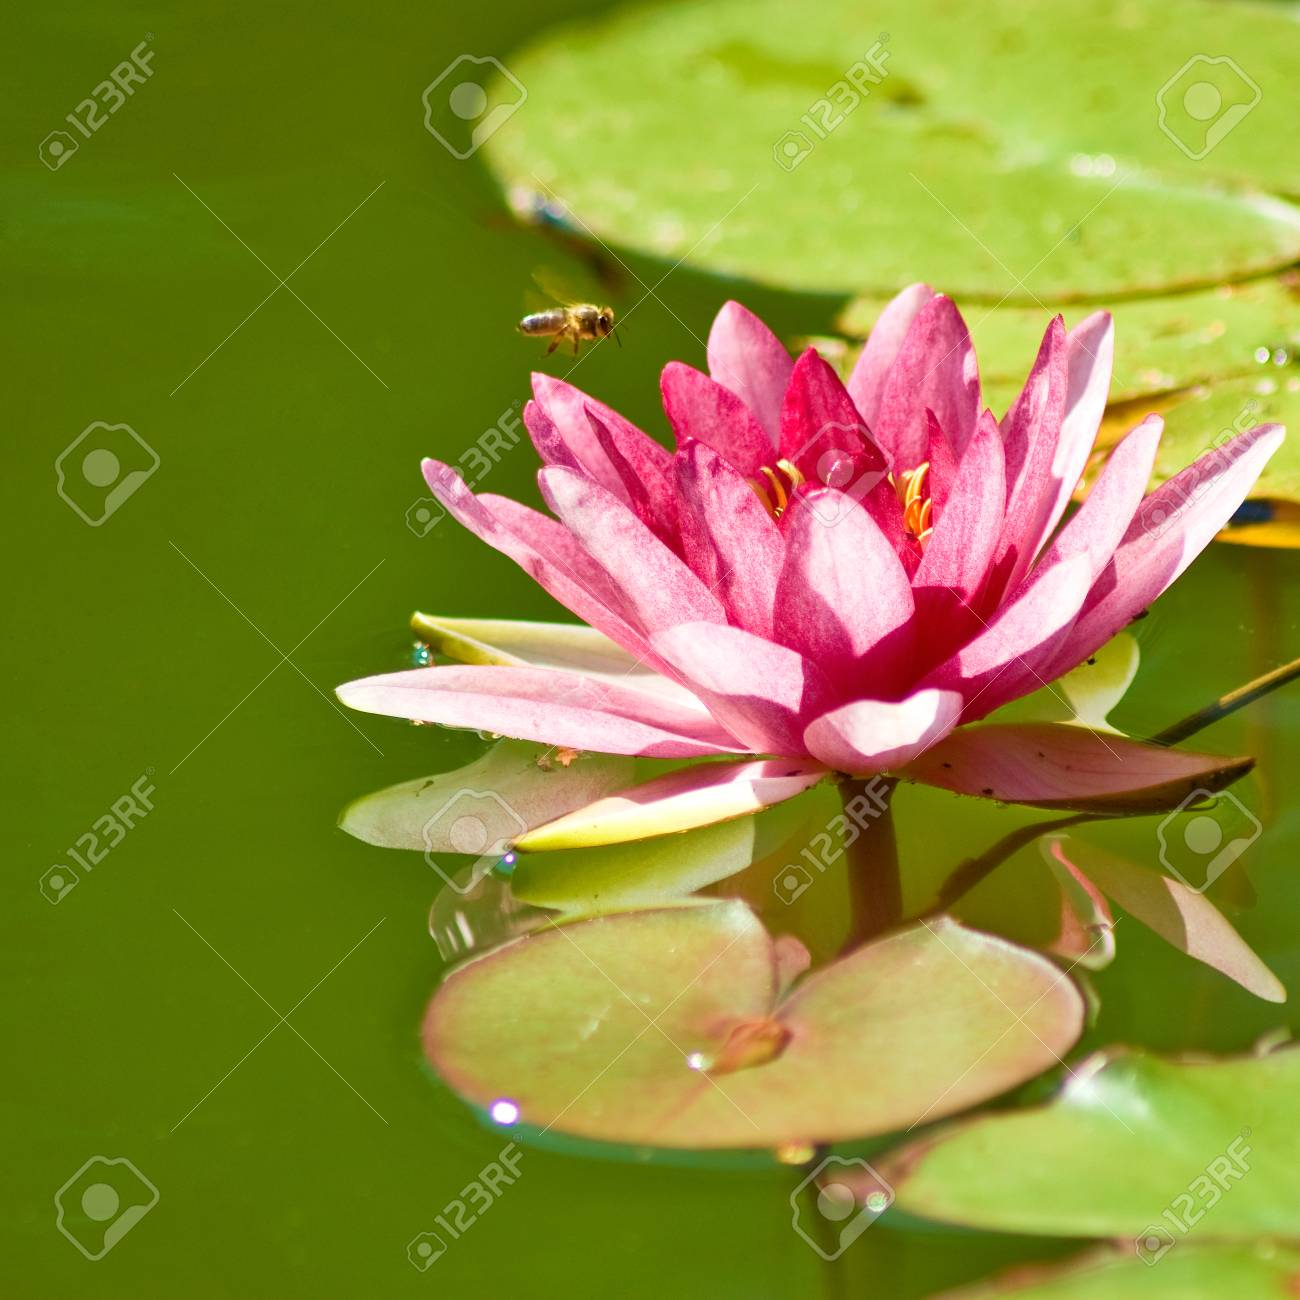 Image Of A Lotus Flower On The Water Stock Photo Picture And